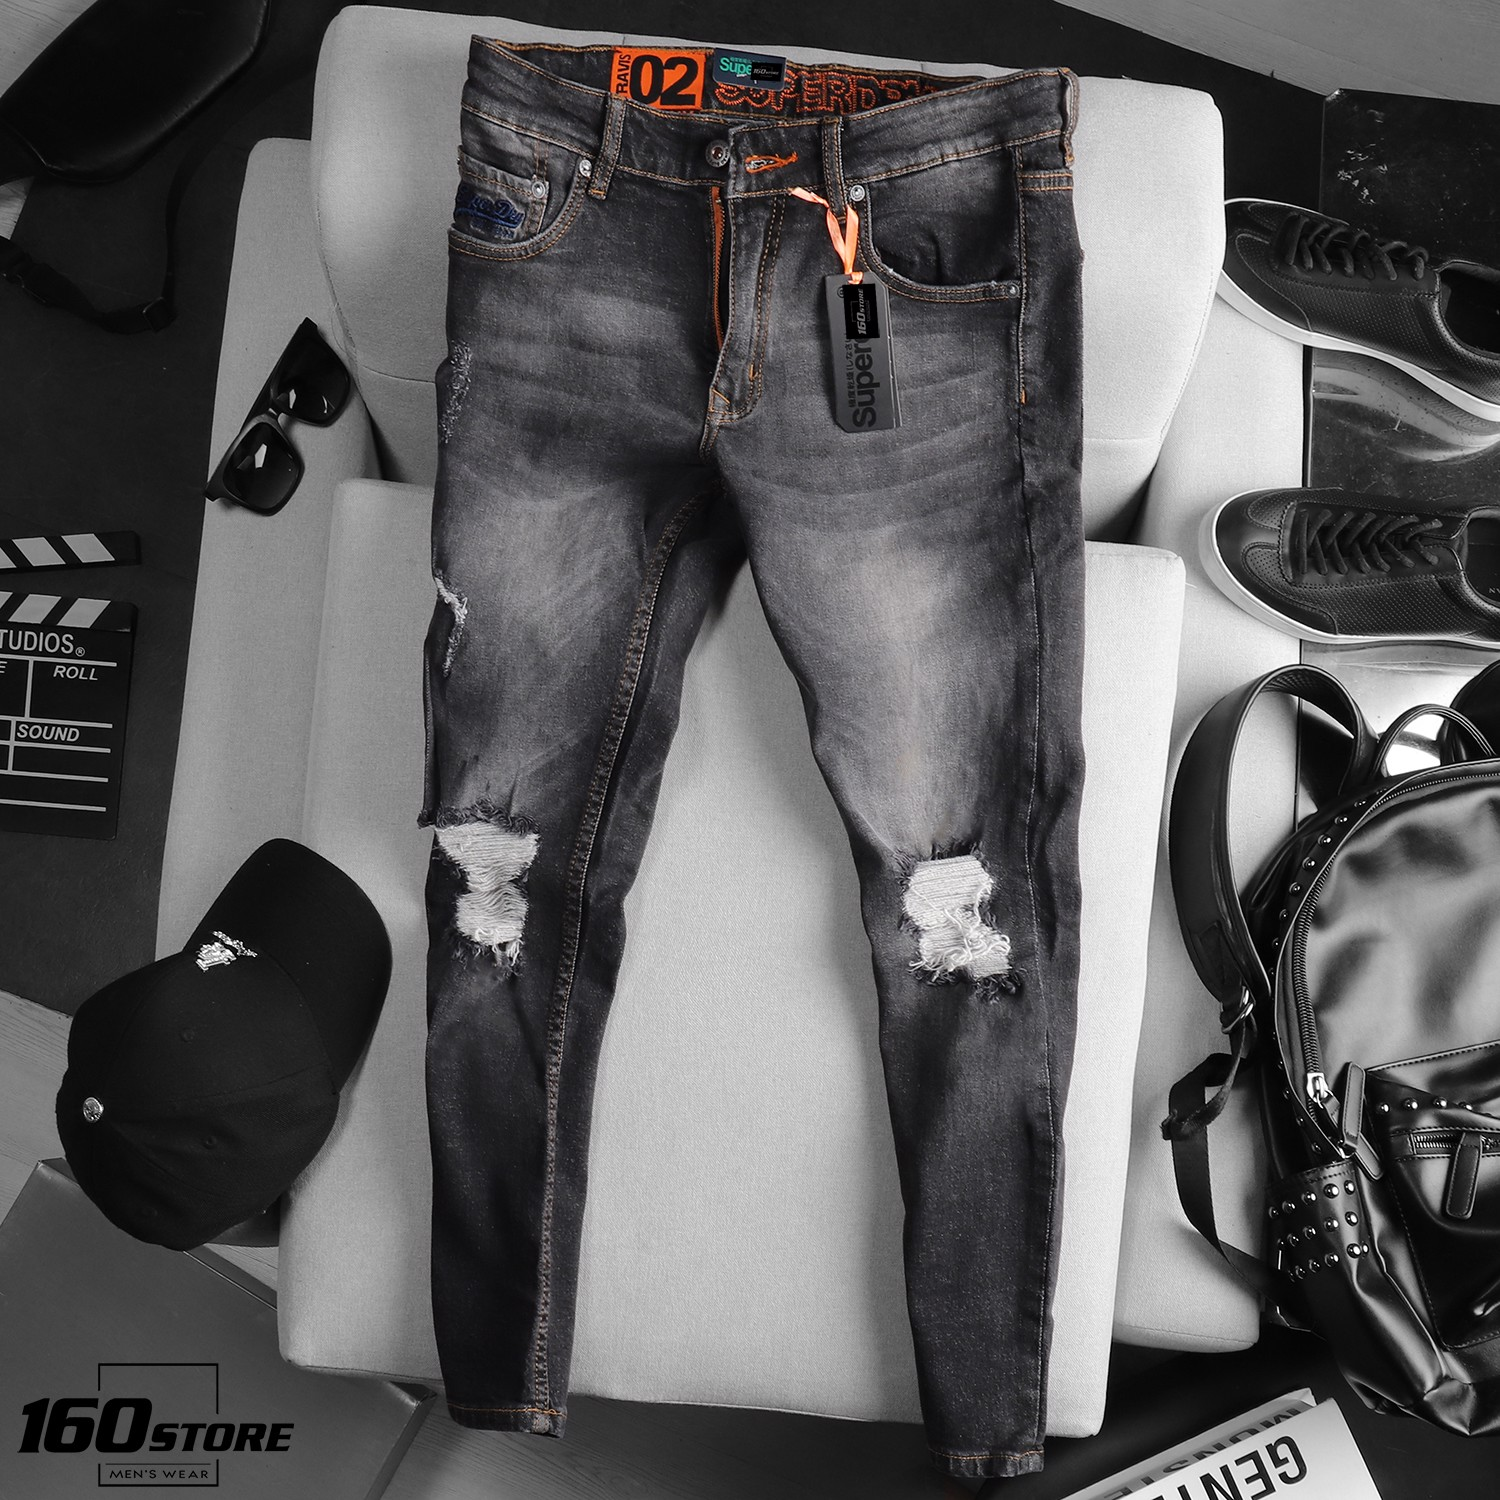 QUẦN JEAN S.DRY RIPPED